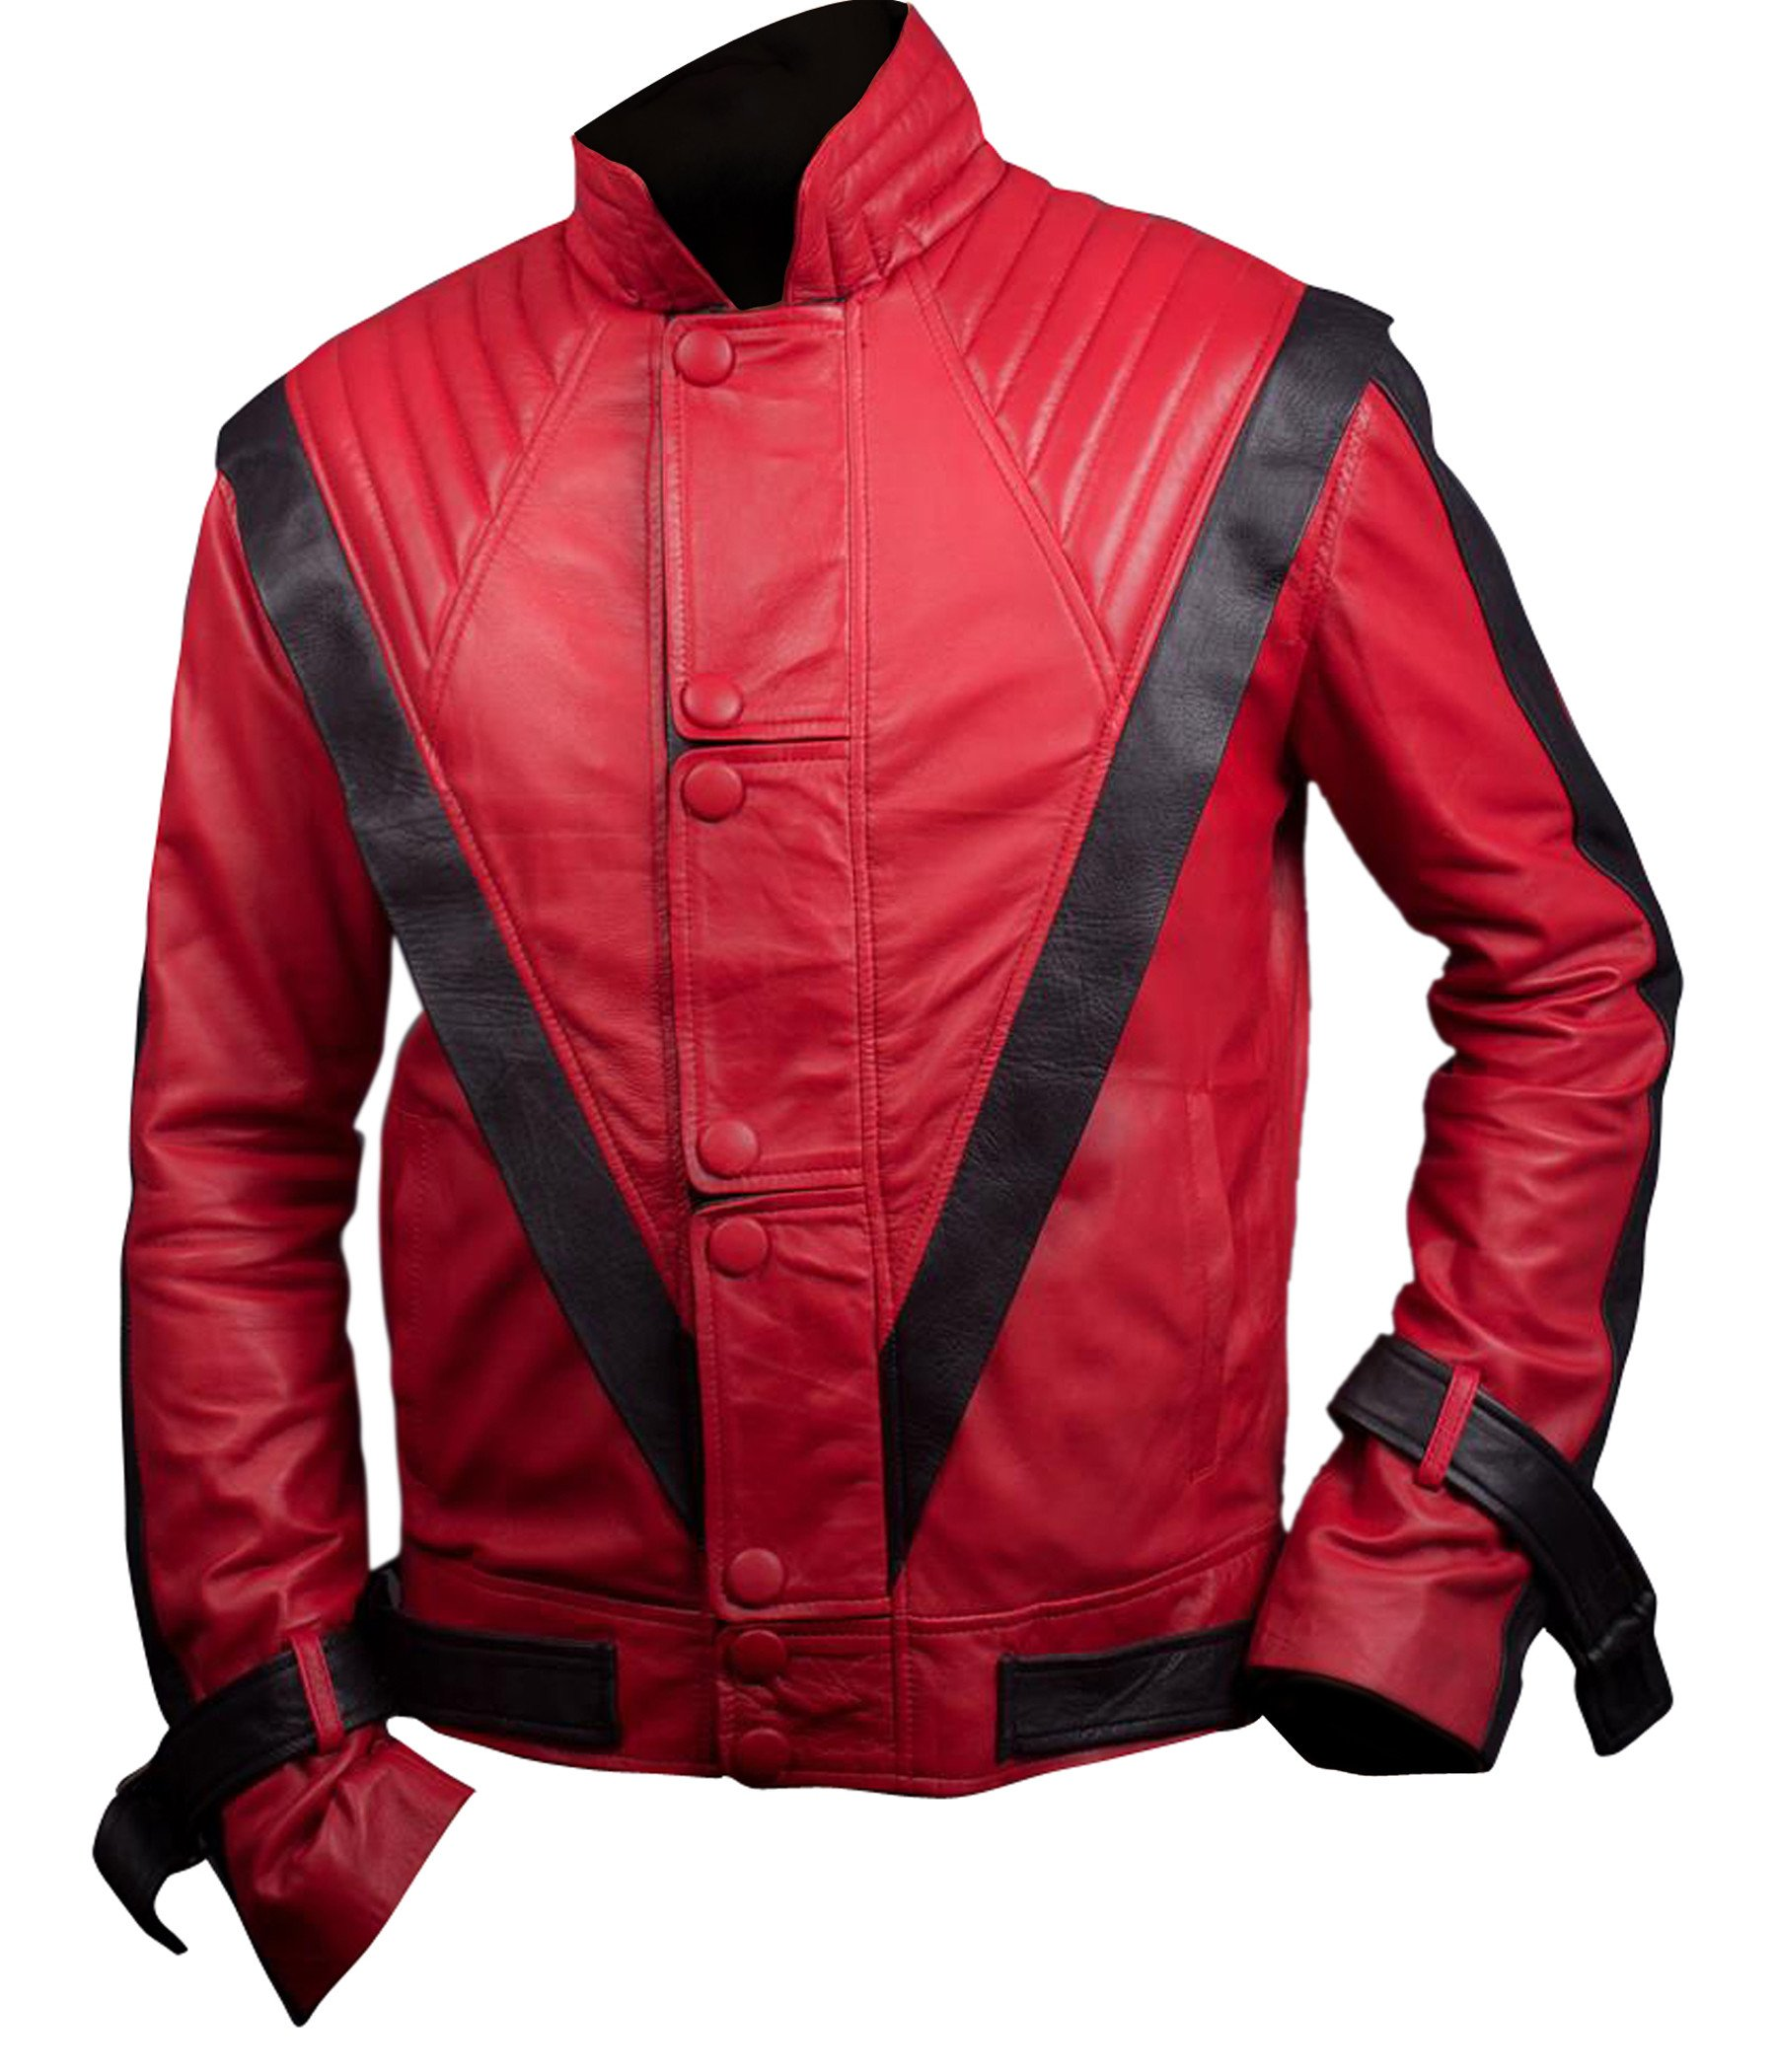 F&H Boy's Michael Jackson Thriller Genuine Leather Jacket S Red by Flesh & Hide